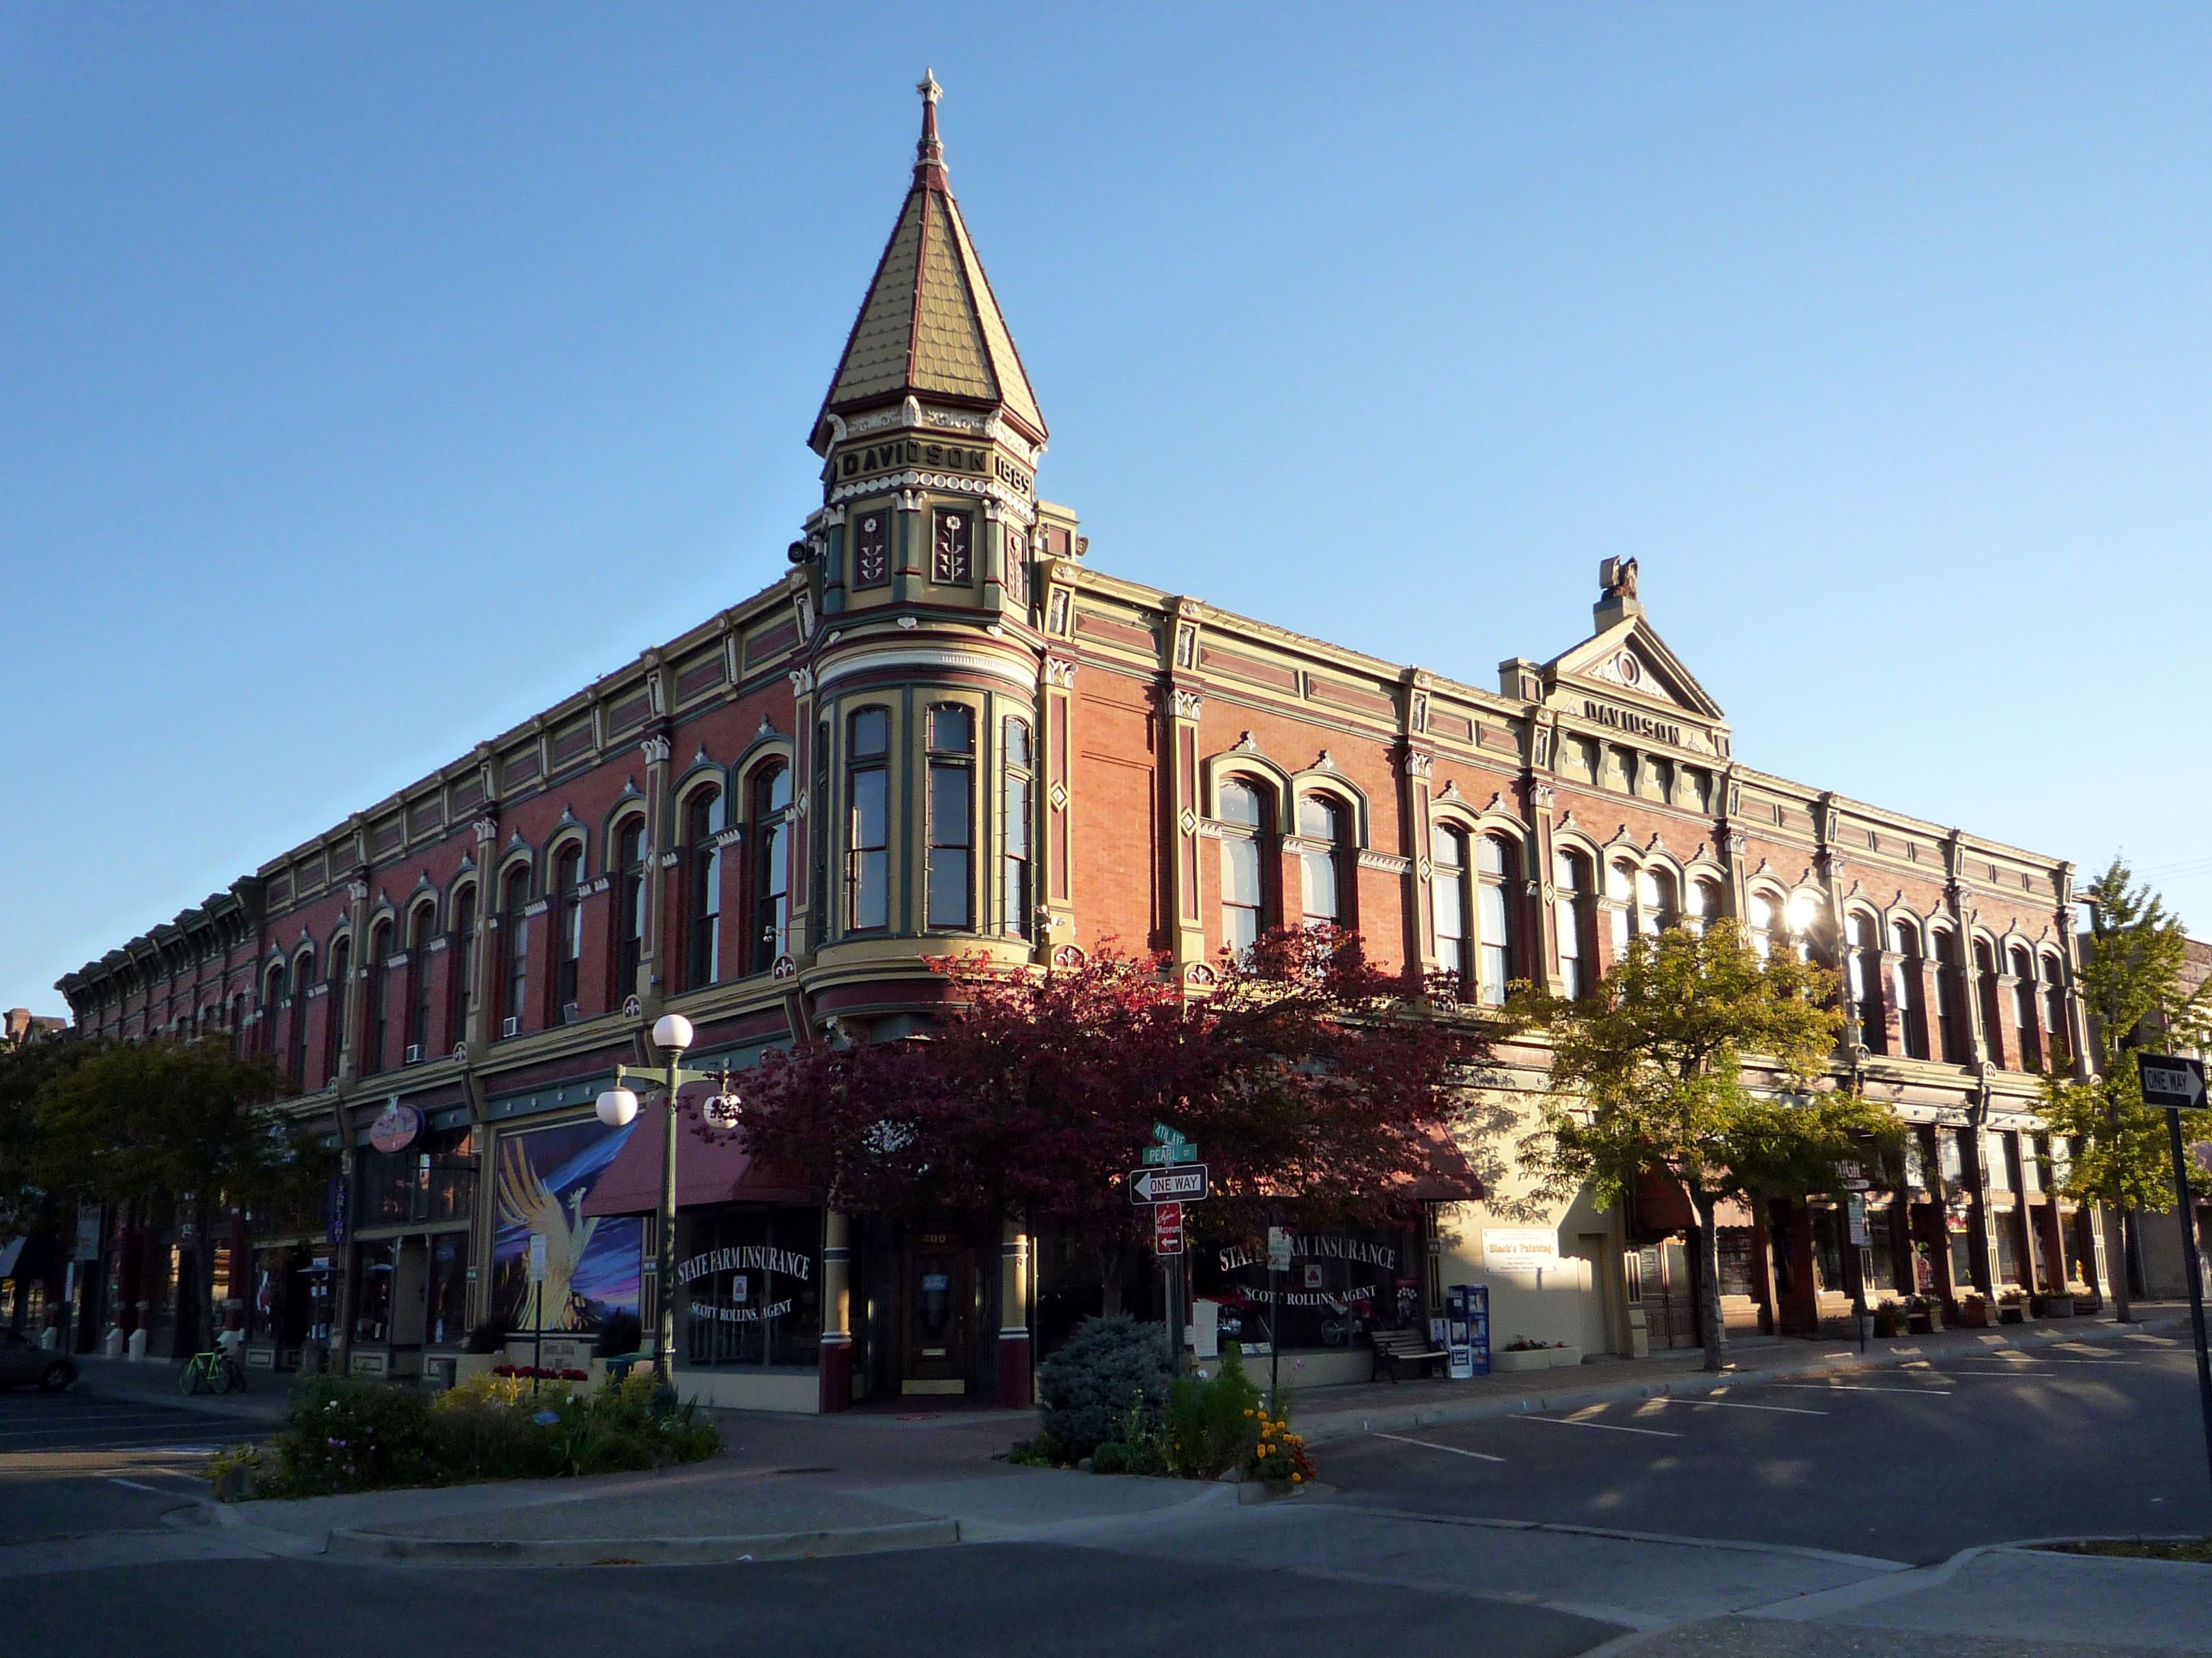 Ellensburg, Washington